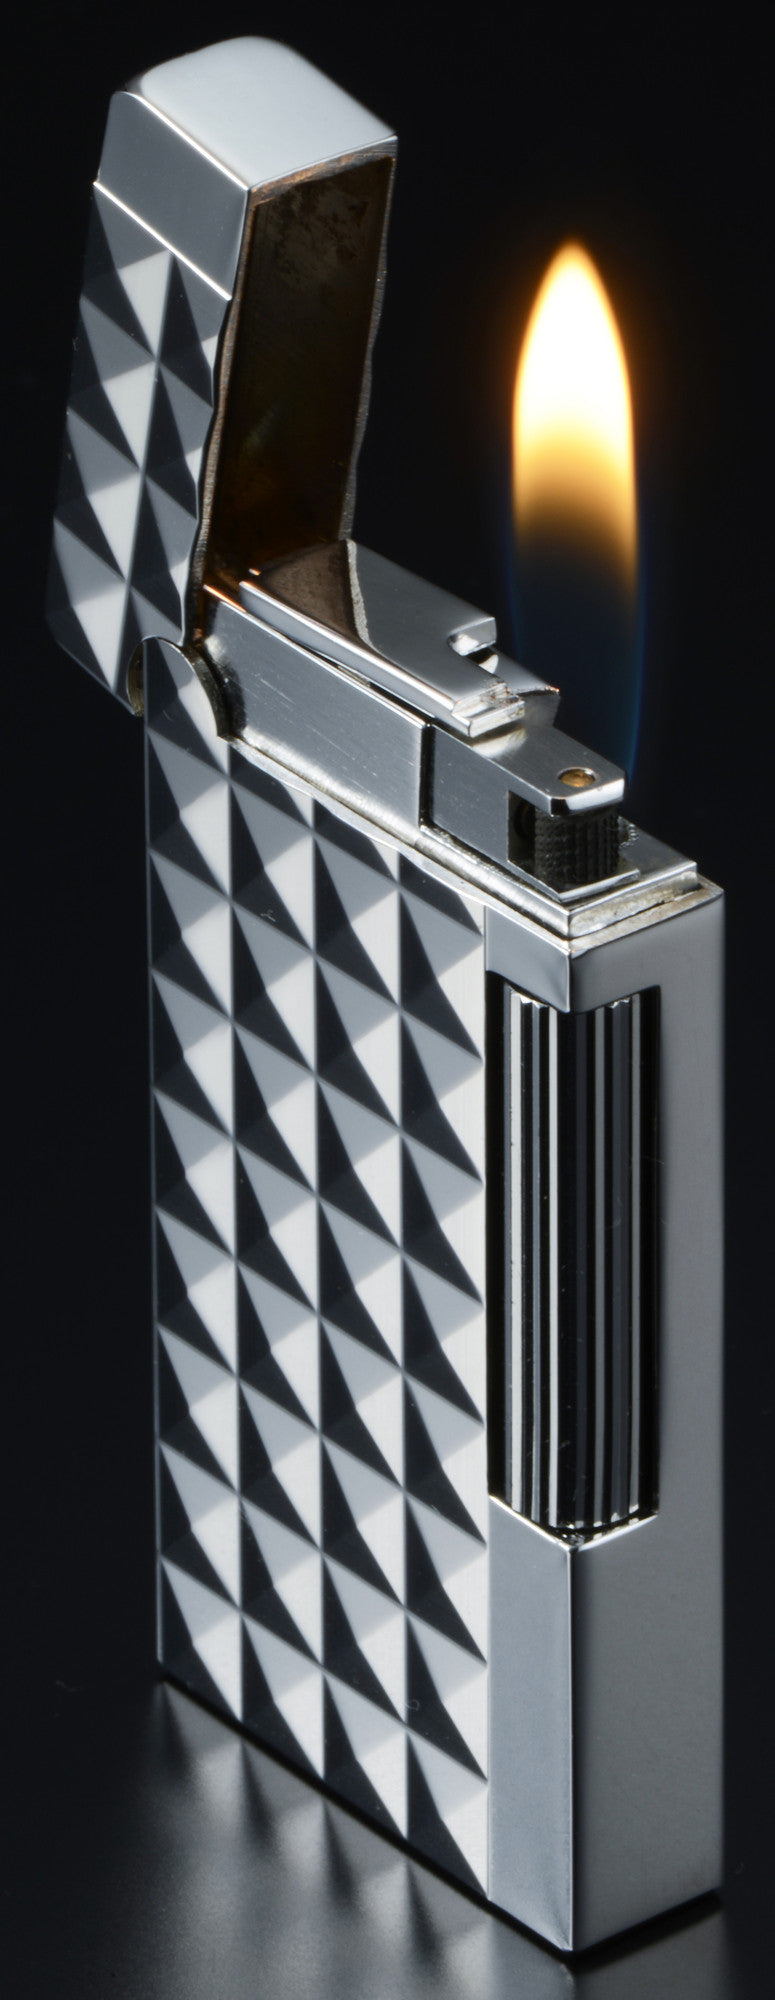 Sarome Flint Cigarette Cigar Lighter SD6A-07 Silver / Diamond head